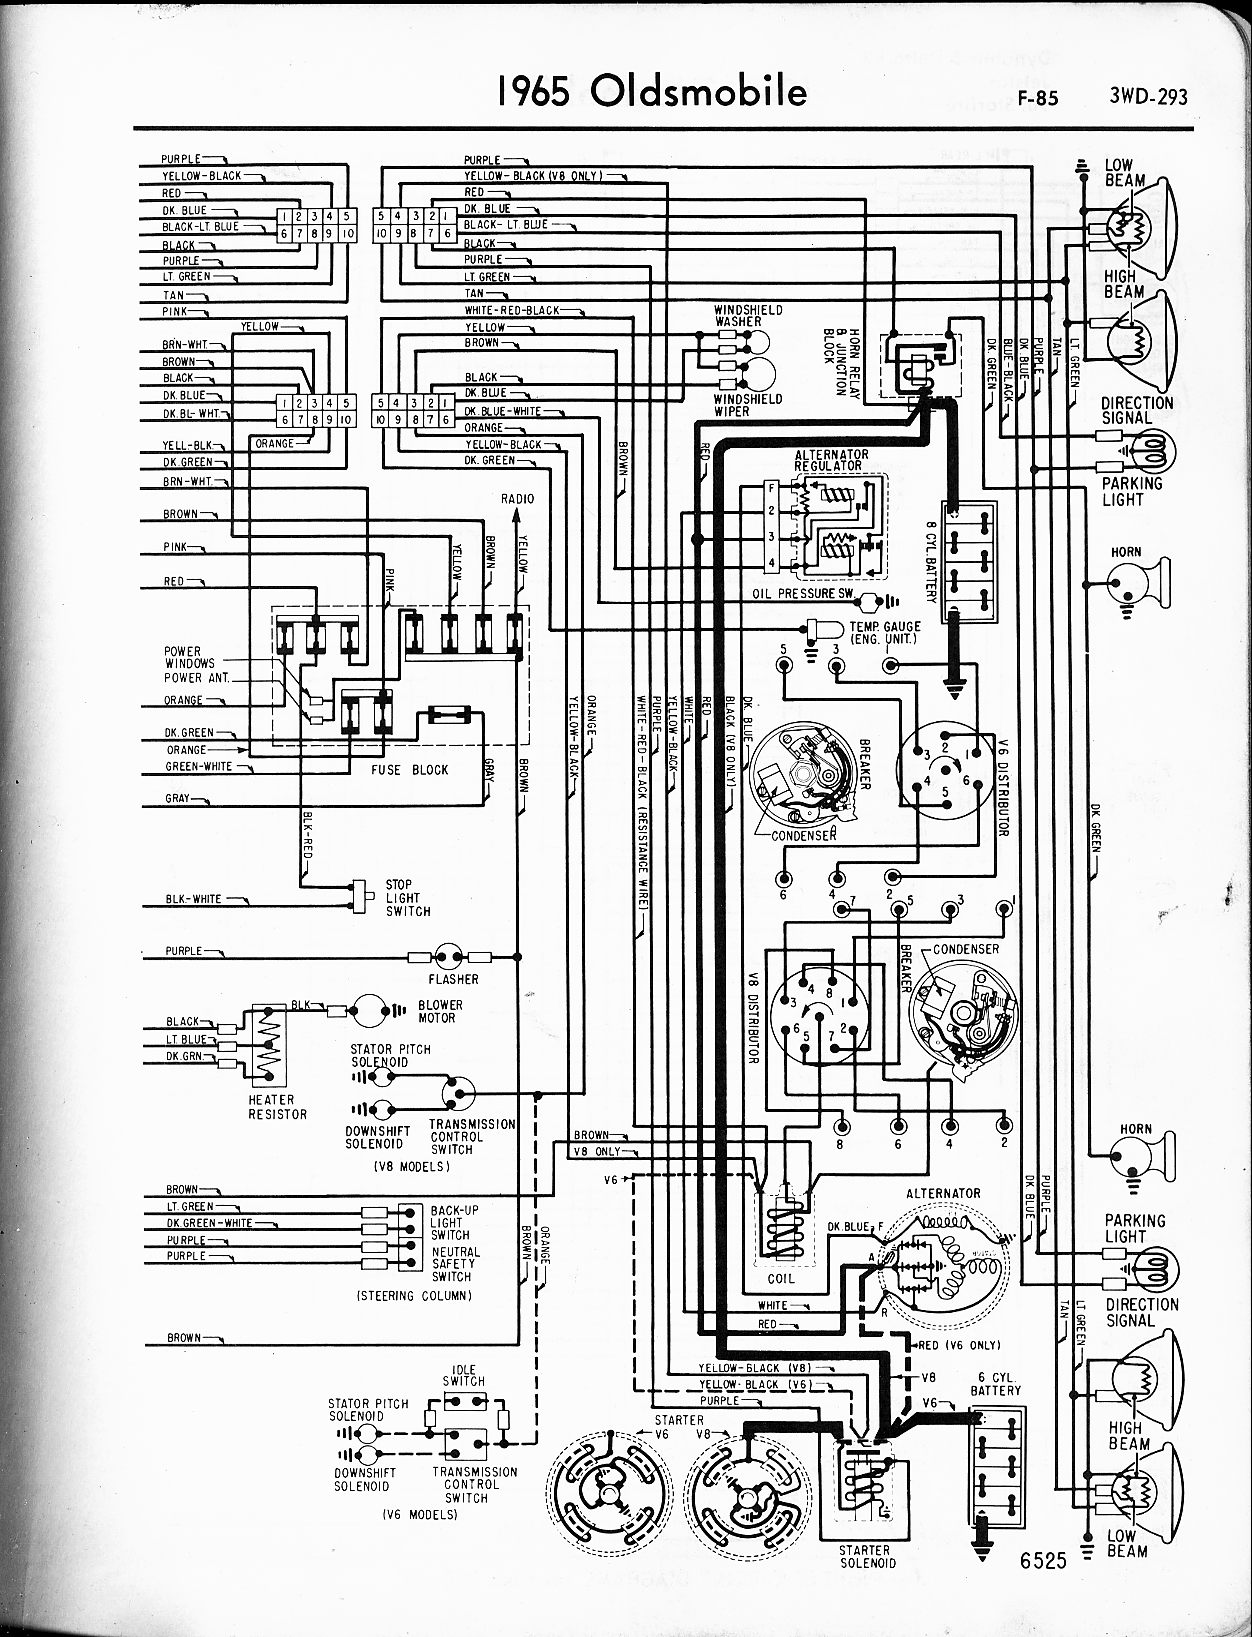 fuse diagram for 1976 oldsmobile car wiring diagrams explained u2022 rh justinmyers co 1969 Oldsmobile Wiring-Diagram 1998 Oldsmobile 88 Transmission Diagram